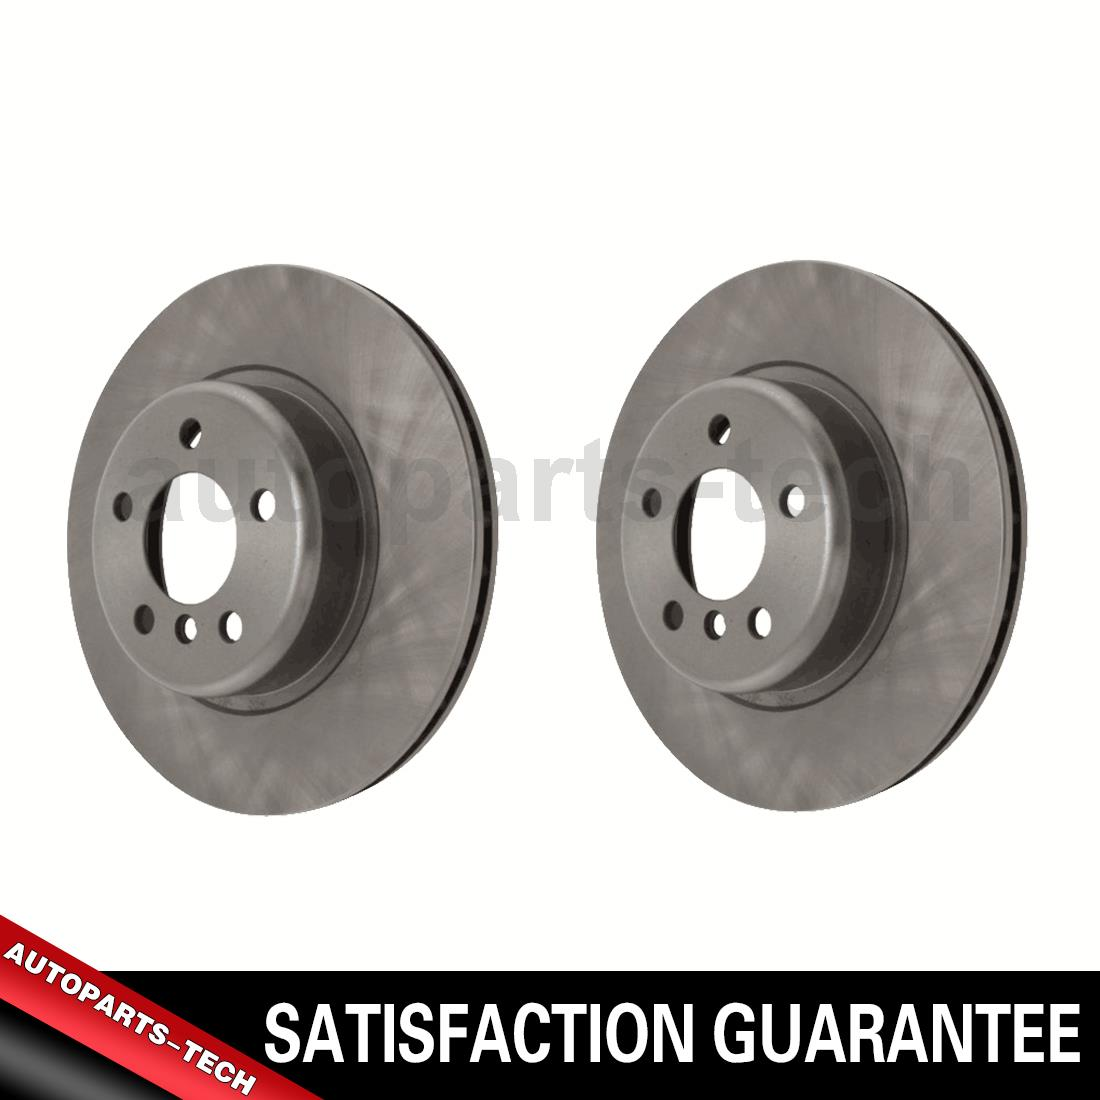 2x Centric Parts Front Disc Brake Rotor For Audi R8 2008